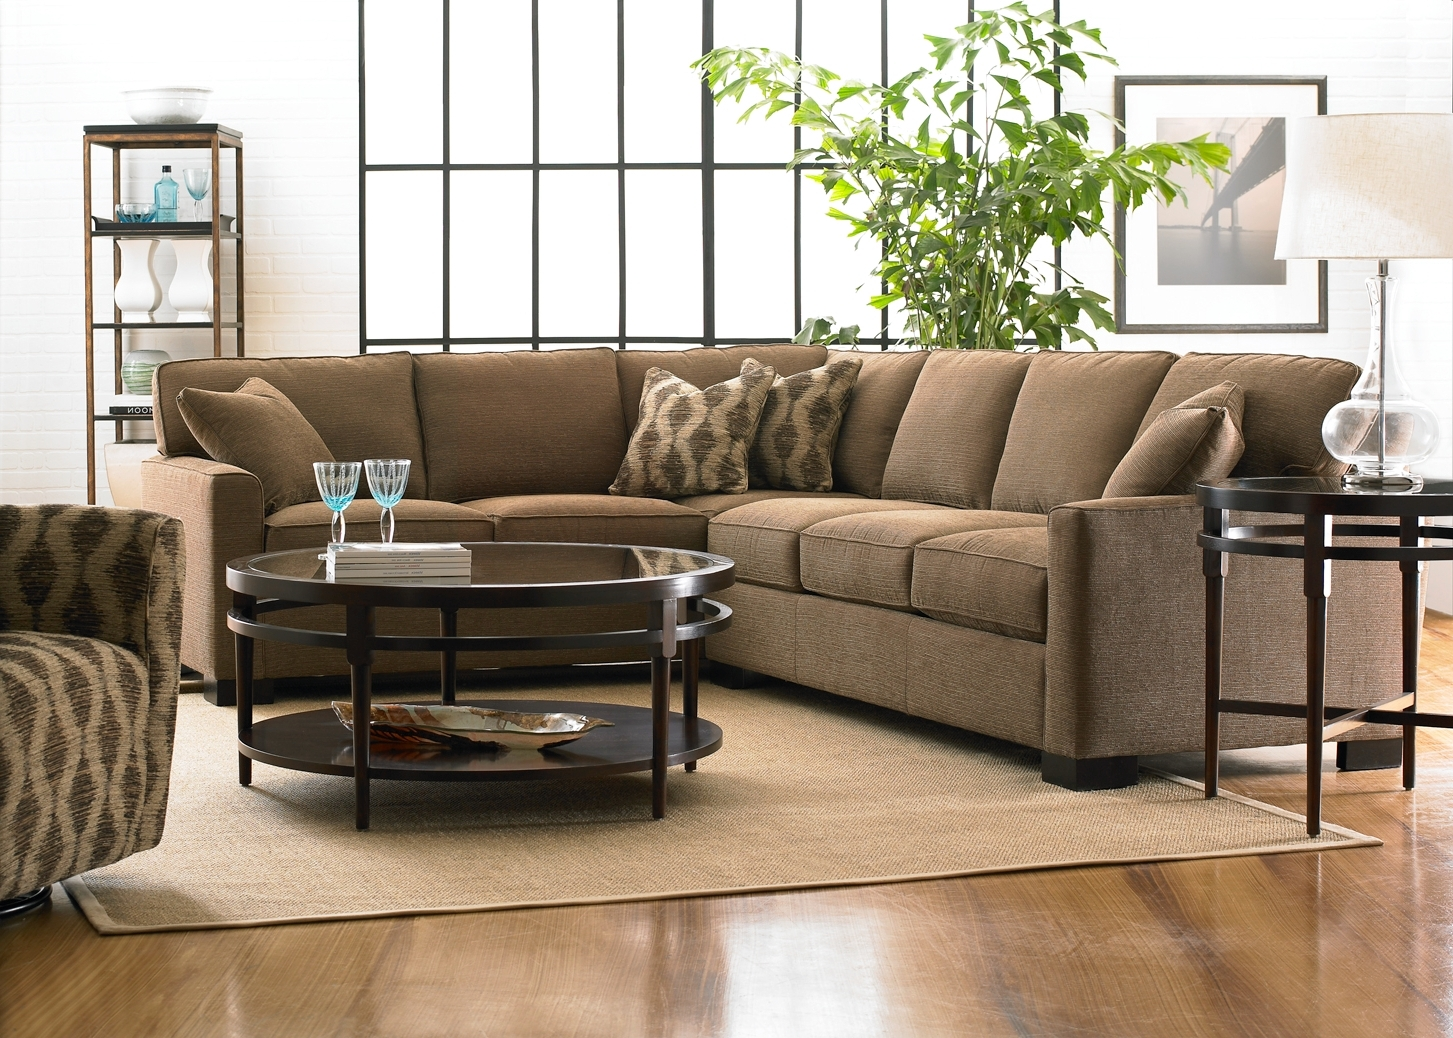 Reclining Sectional Sofas For Small Spaces With Most Current Sectional Sofas In Small Spaces (View 6 of 20)